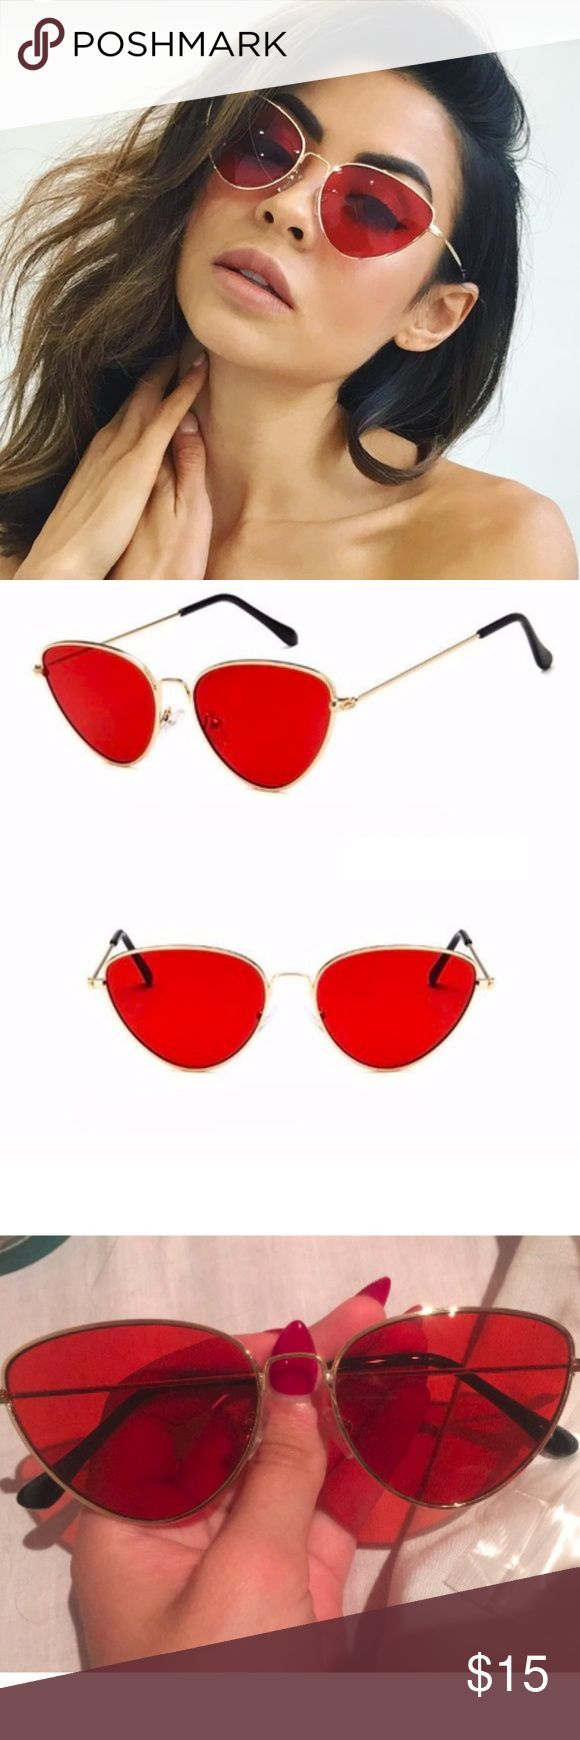 New rose rot getönten retro cat eye sonnenbrille gold gerahmte cat eyed sonnenbrille mit …,…